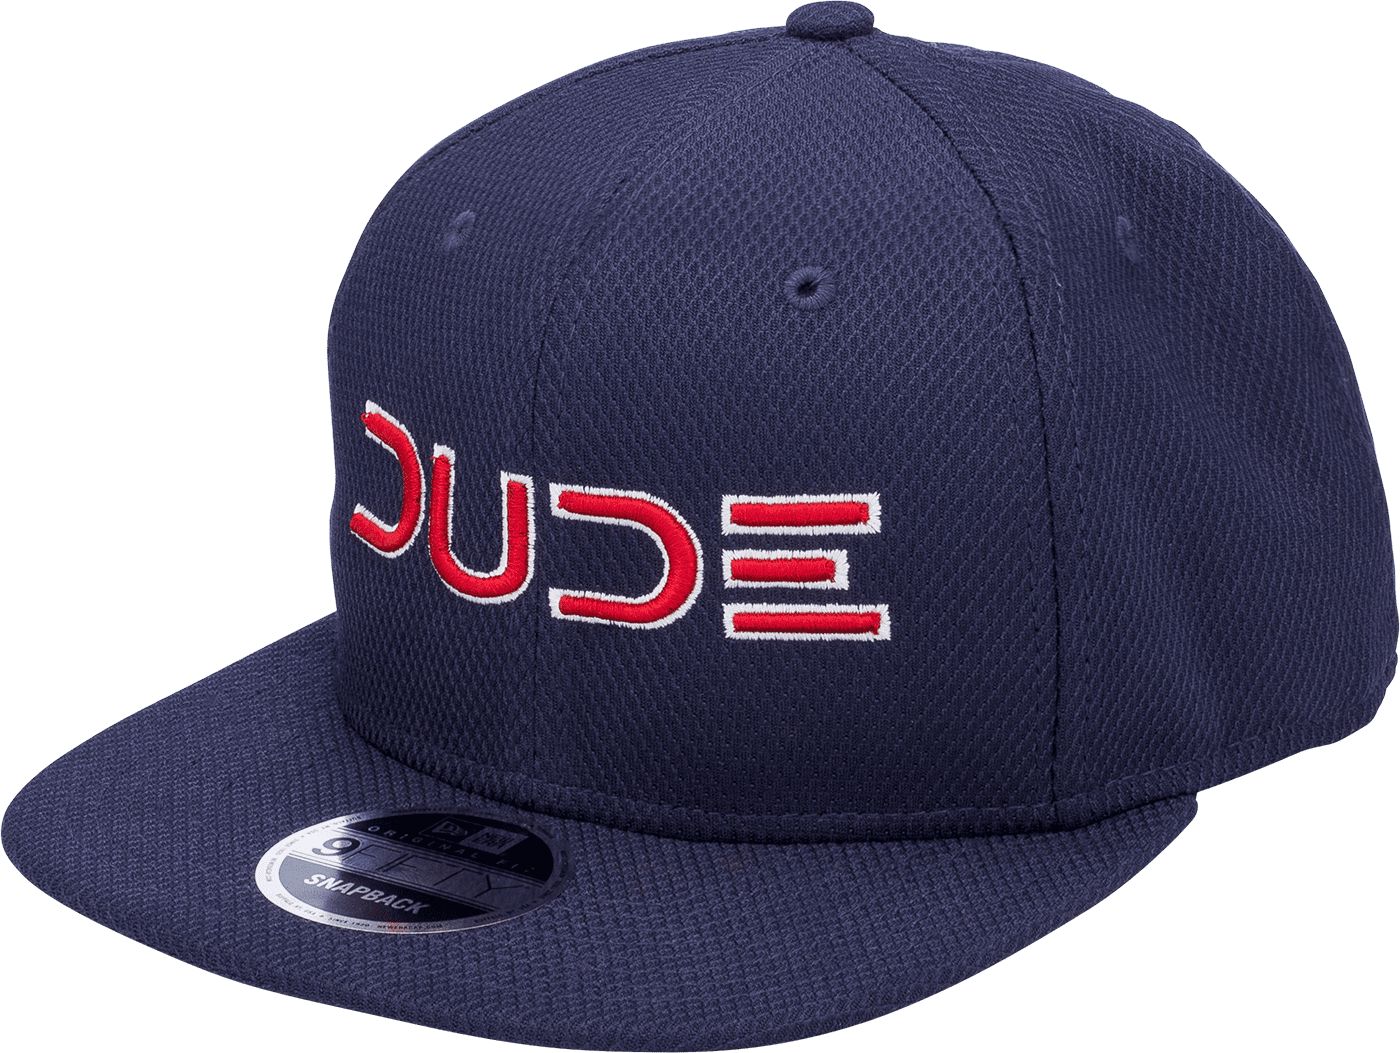 Navy & Red, Mesh Snapback - DudeProducts